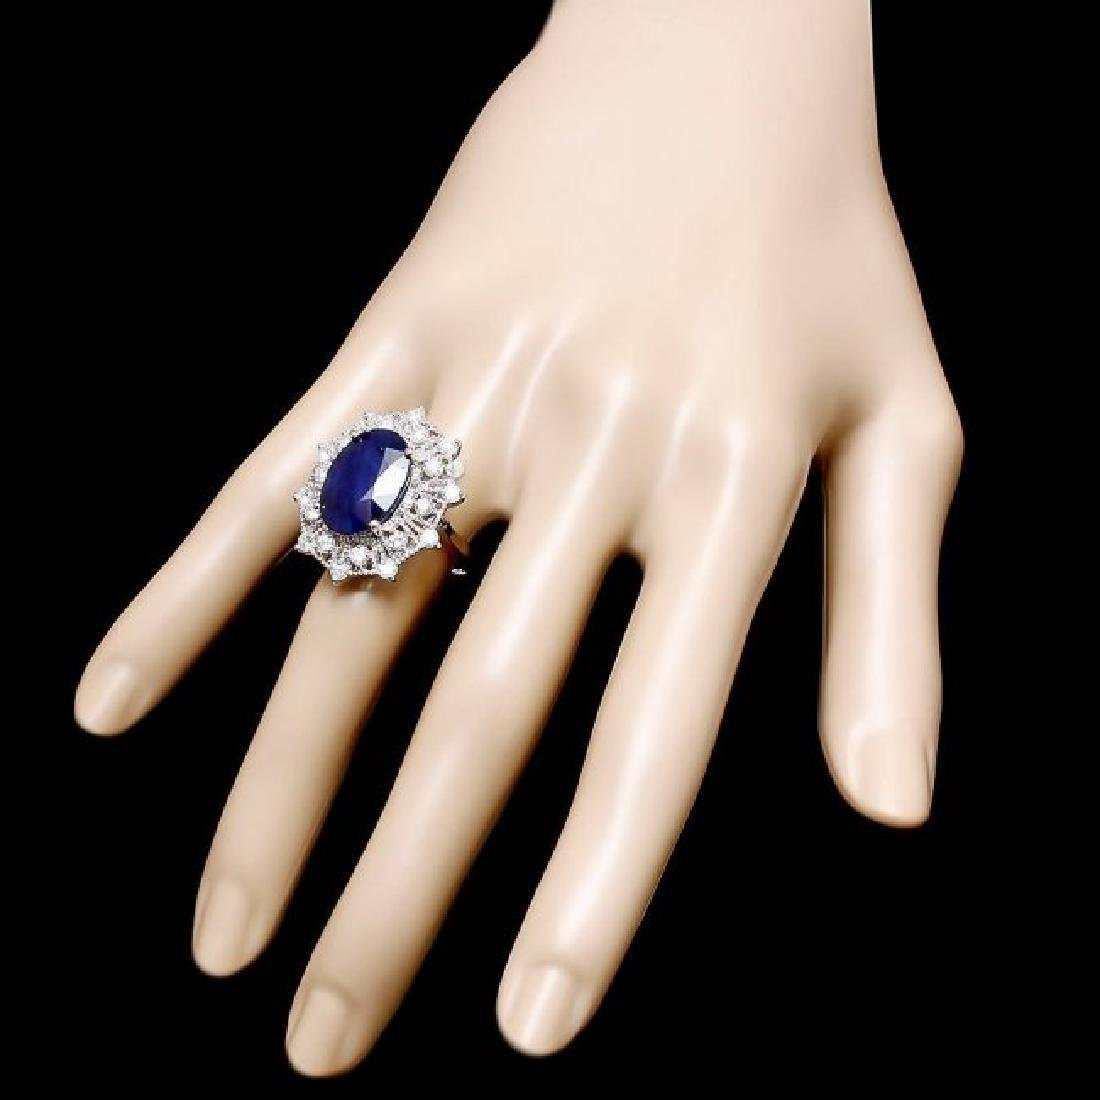 14k Gold 9.00ct Sapphire 1.35ct Diamond Ring - 3